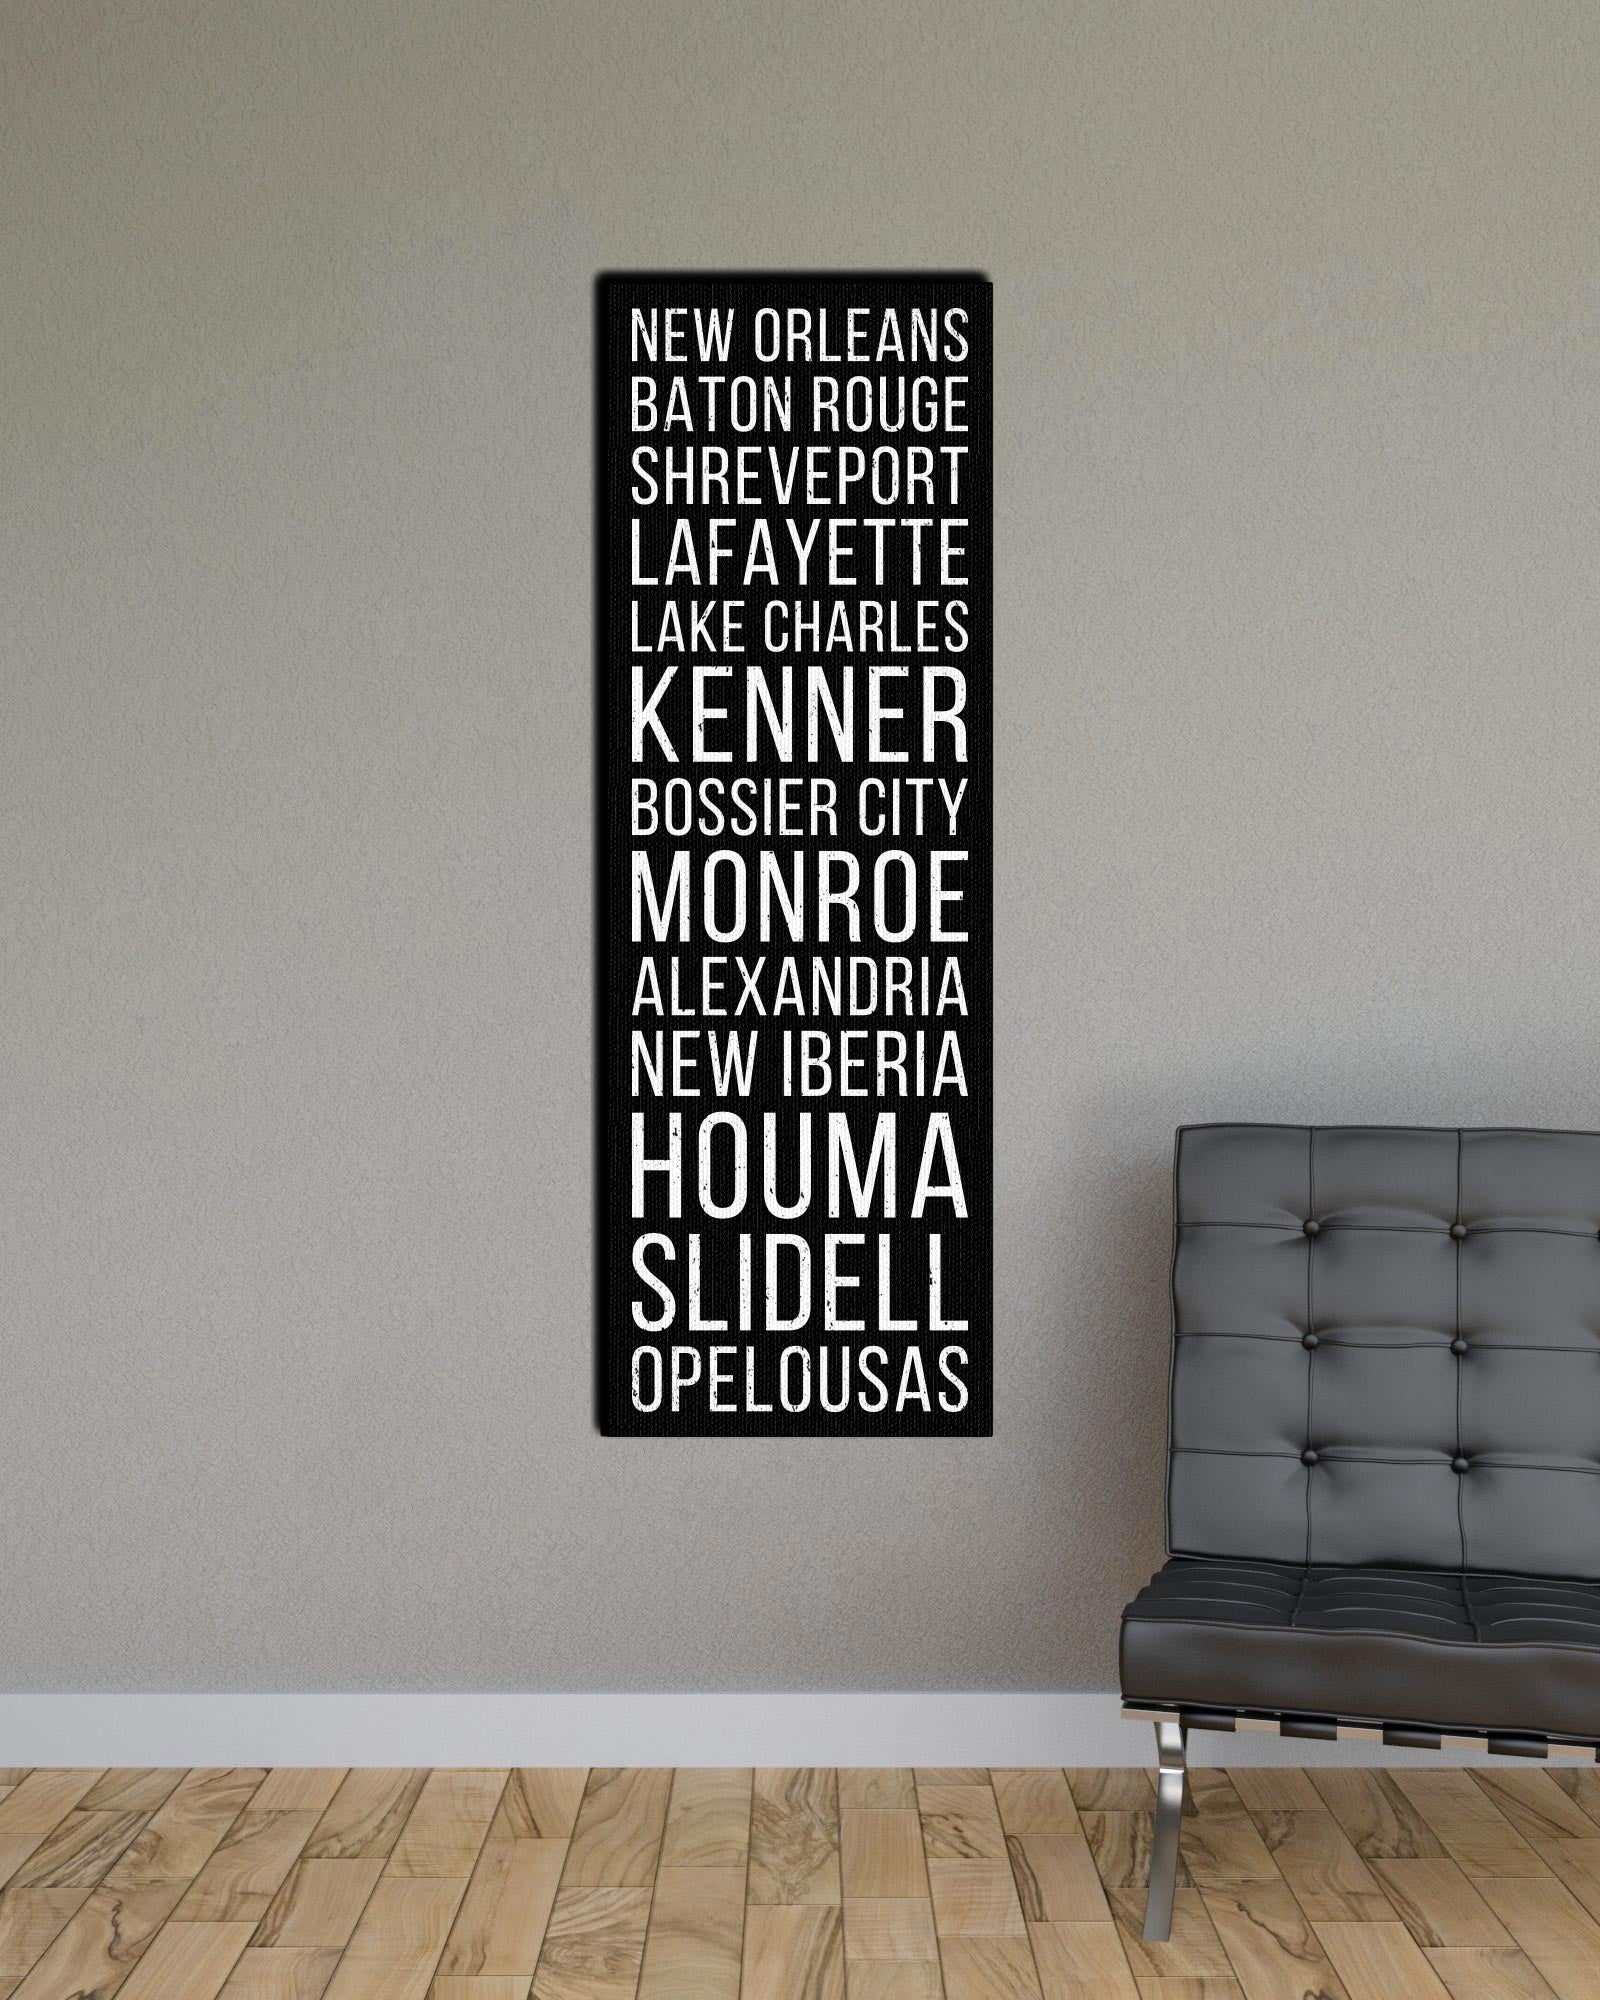 Louisiana New Orleans Baton Rouge Shreveport Bus Scroll Subway Print